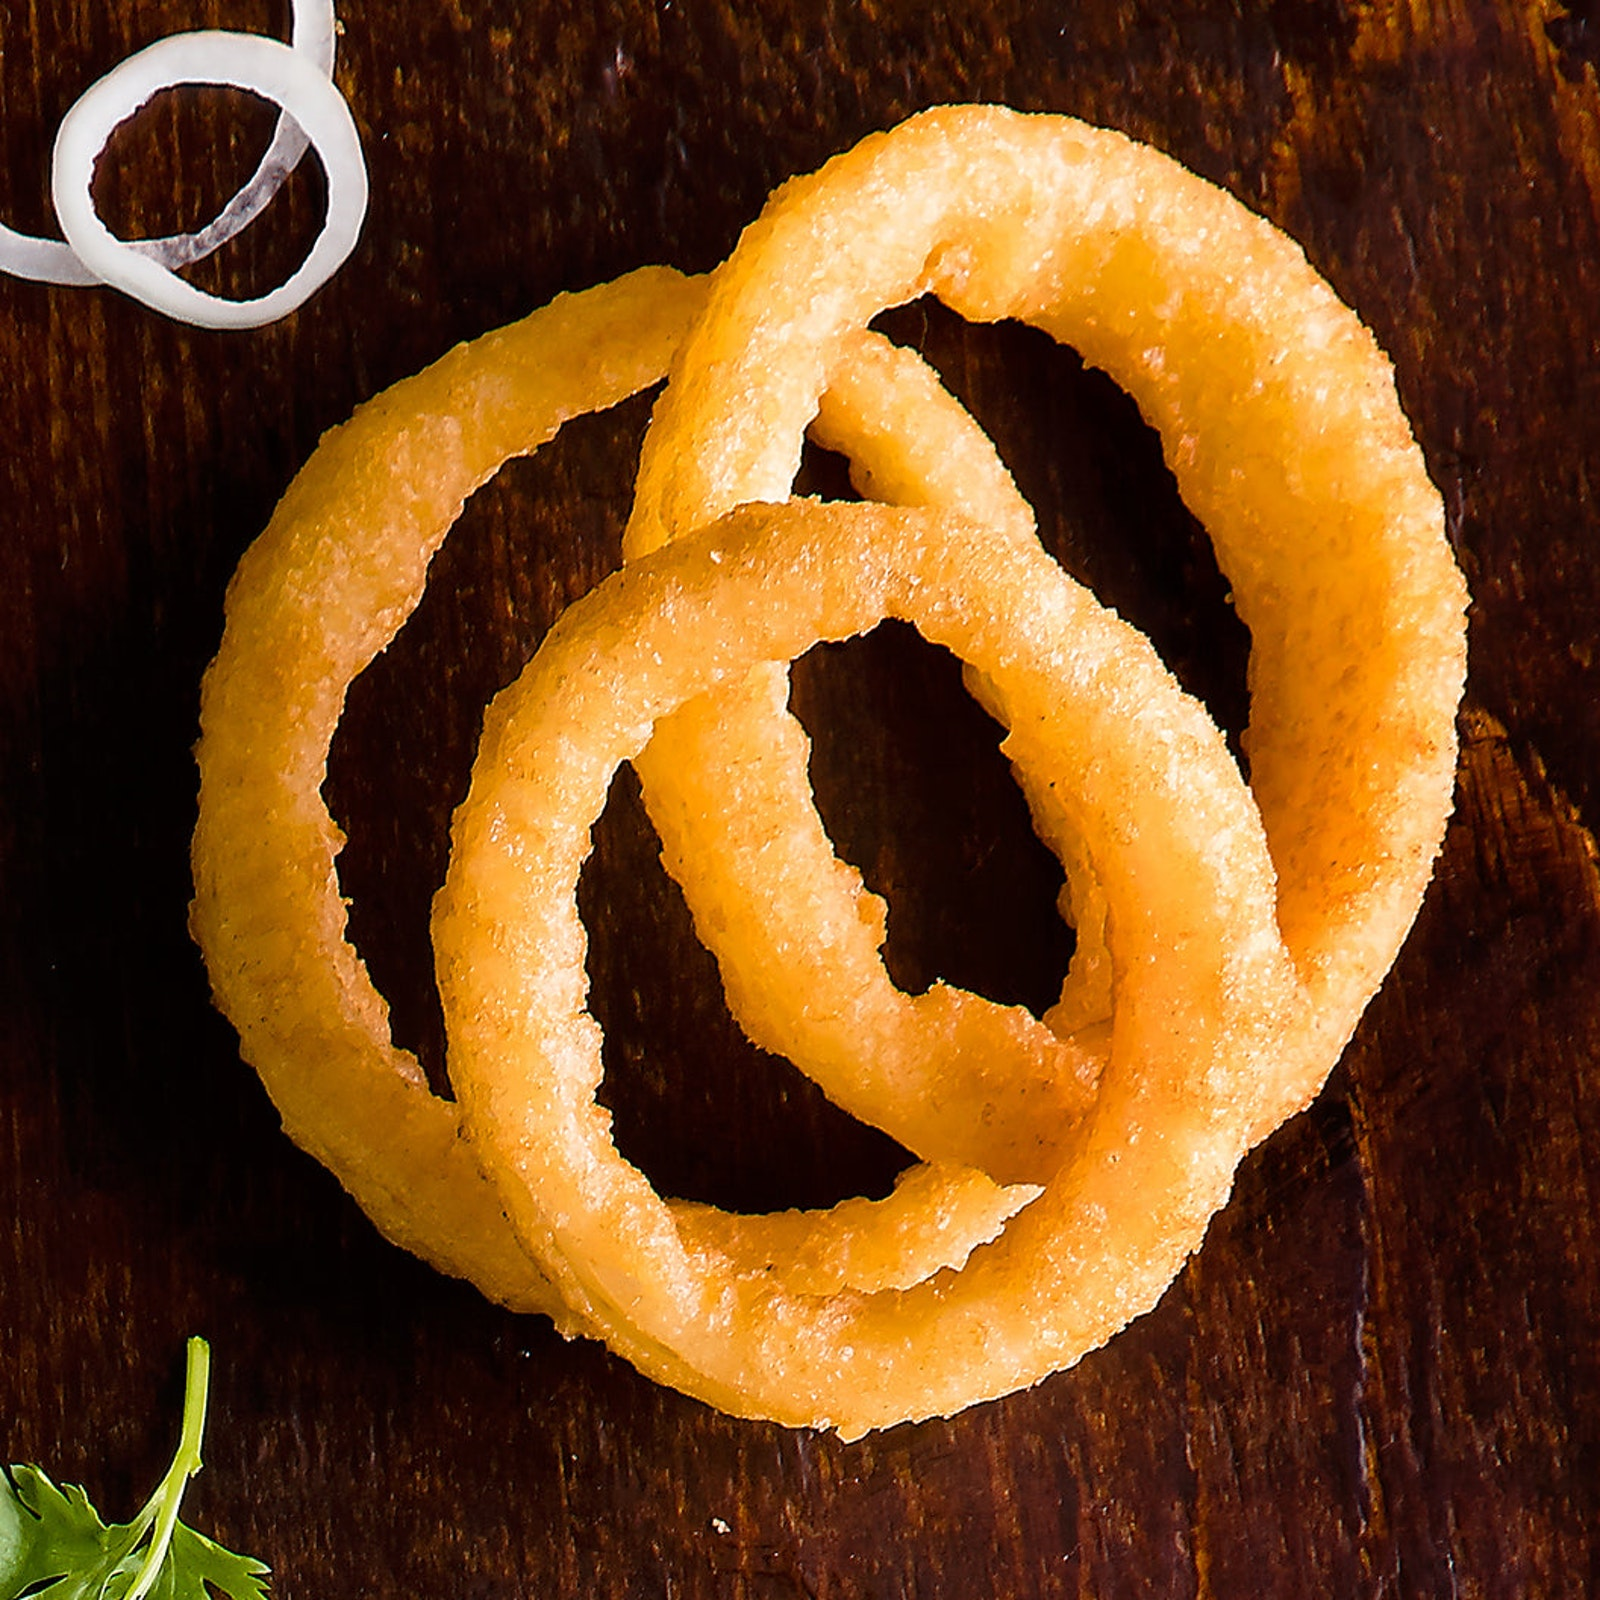 McCain Battered Onion Rings Beefeater